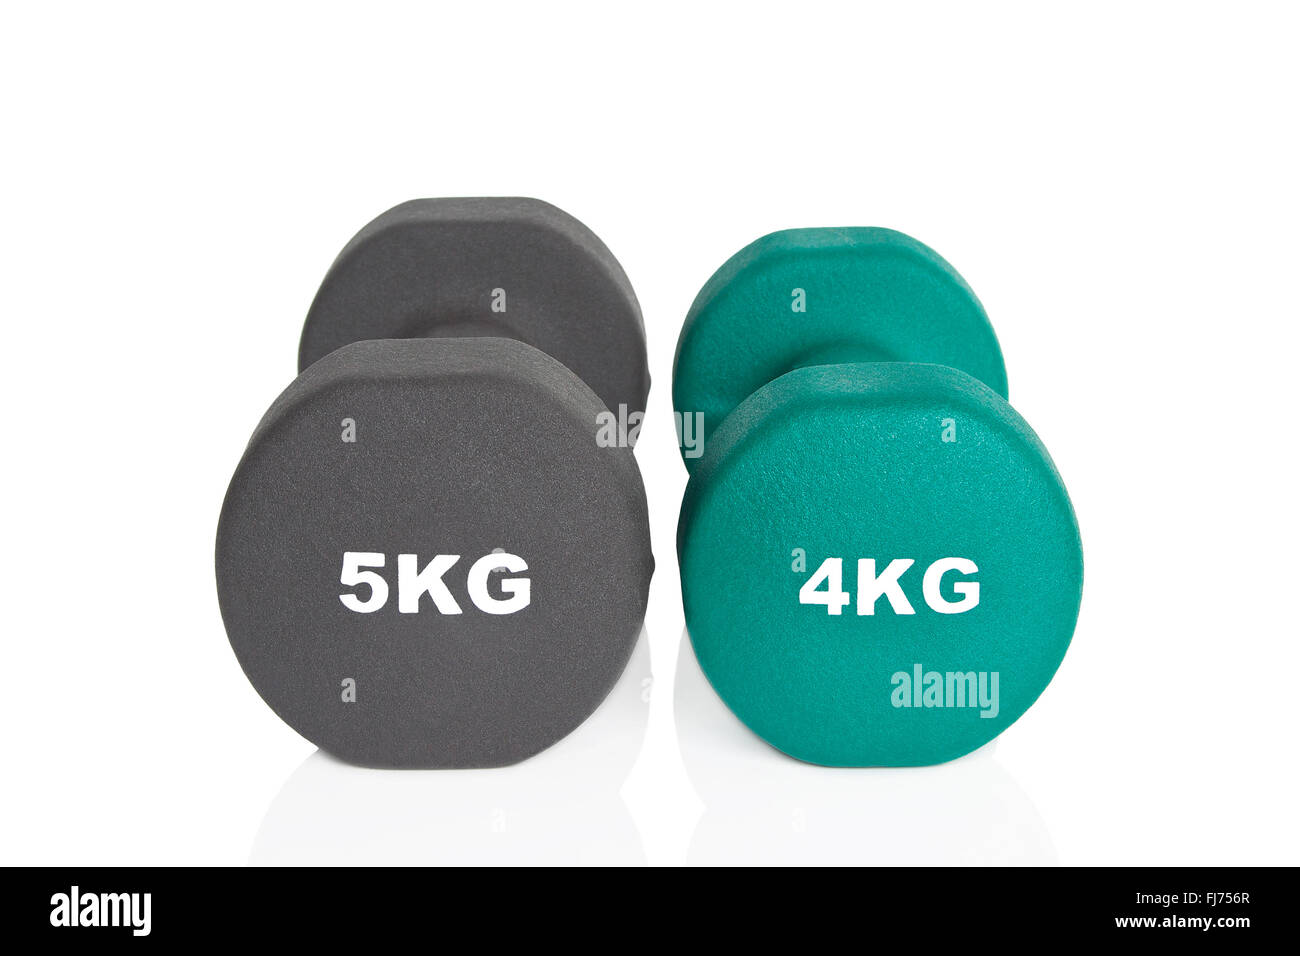 Green 4kg and black 5kg dumbbells isolated on white background. Weights for a fitness training. - Stock Image